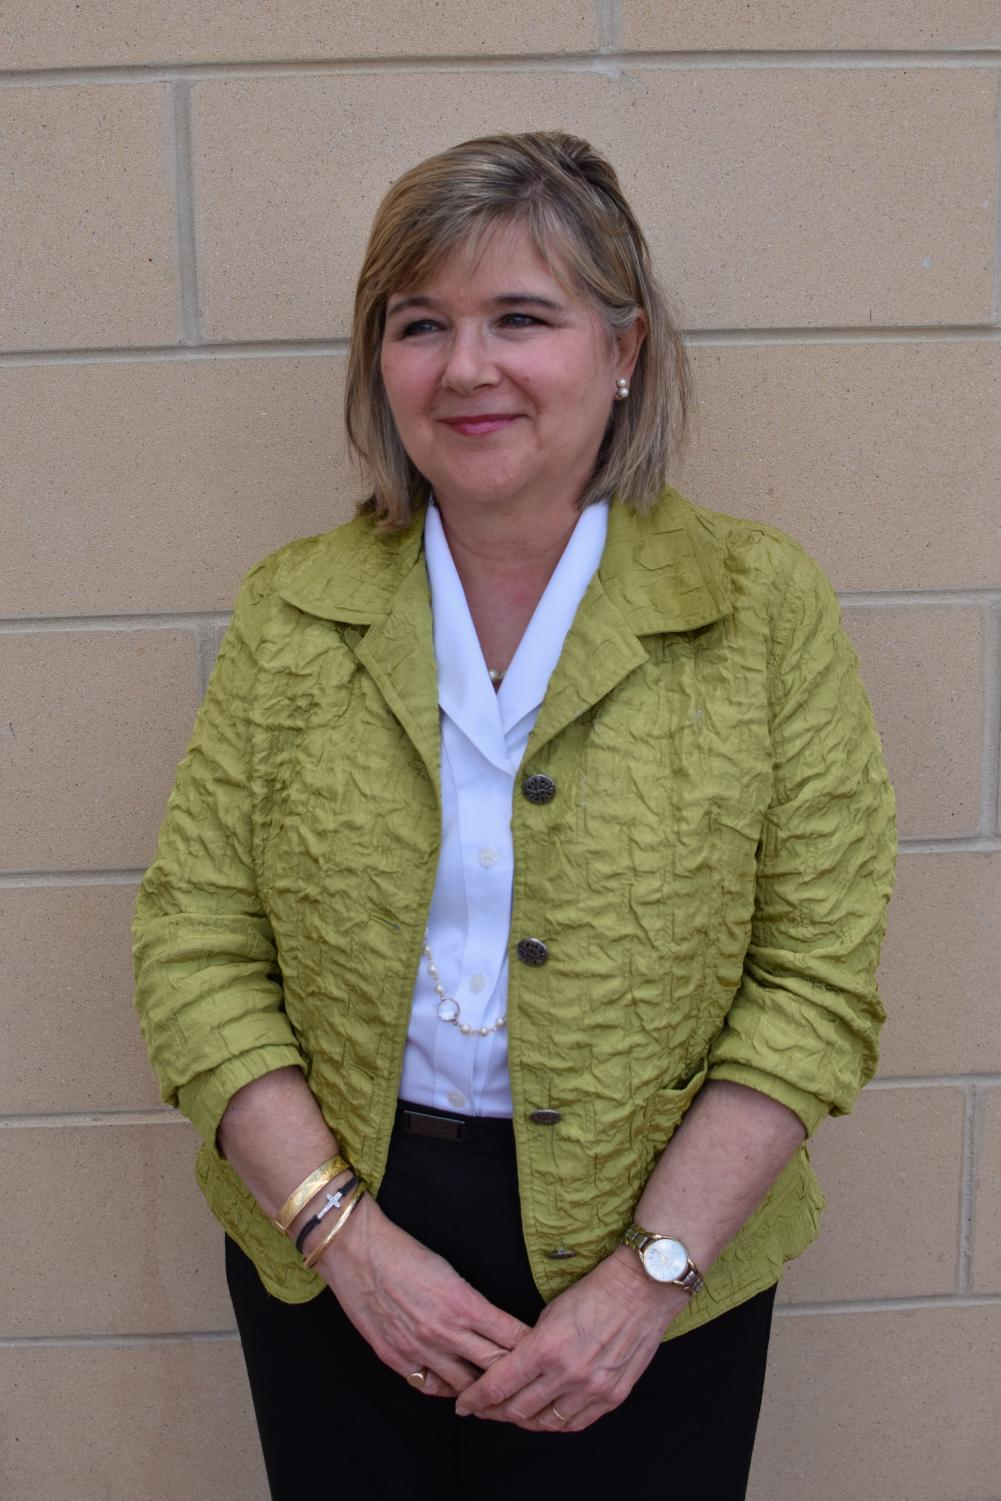 Karen Cook, the Dean of School and Business and Law